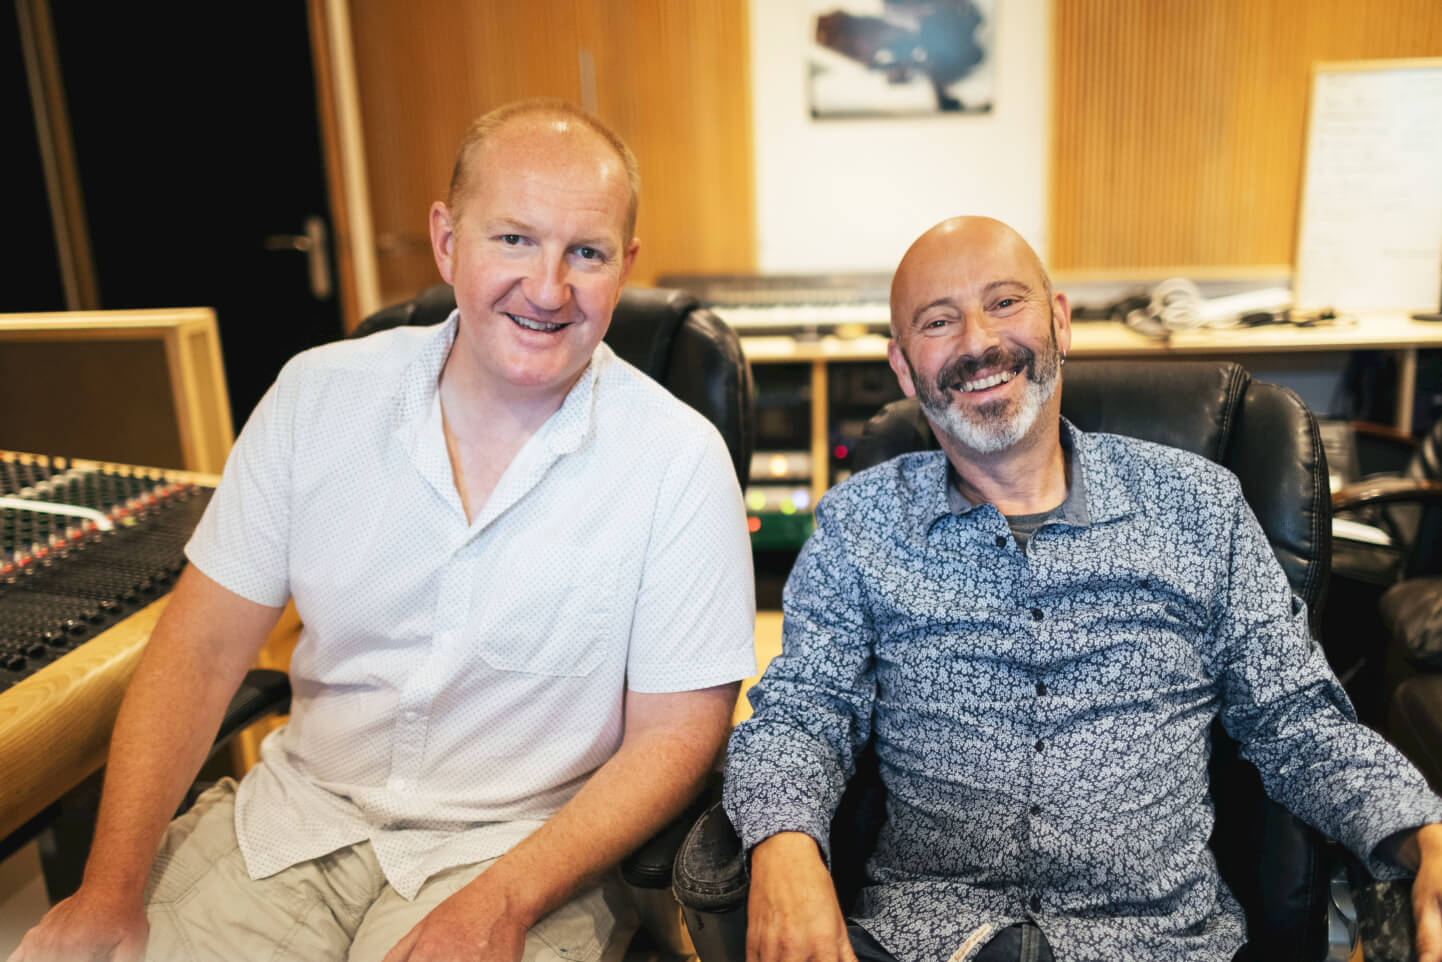 Who we are - What a Voice is the partnership of Nick Moorbath, a sound engineer with over 25 years in the business and Alex Babic, an established voice over and actor.